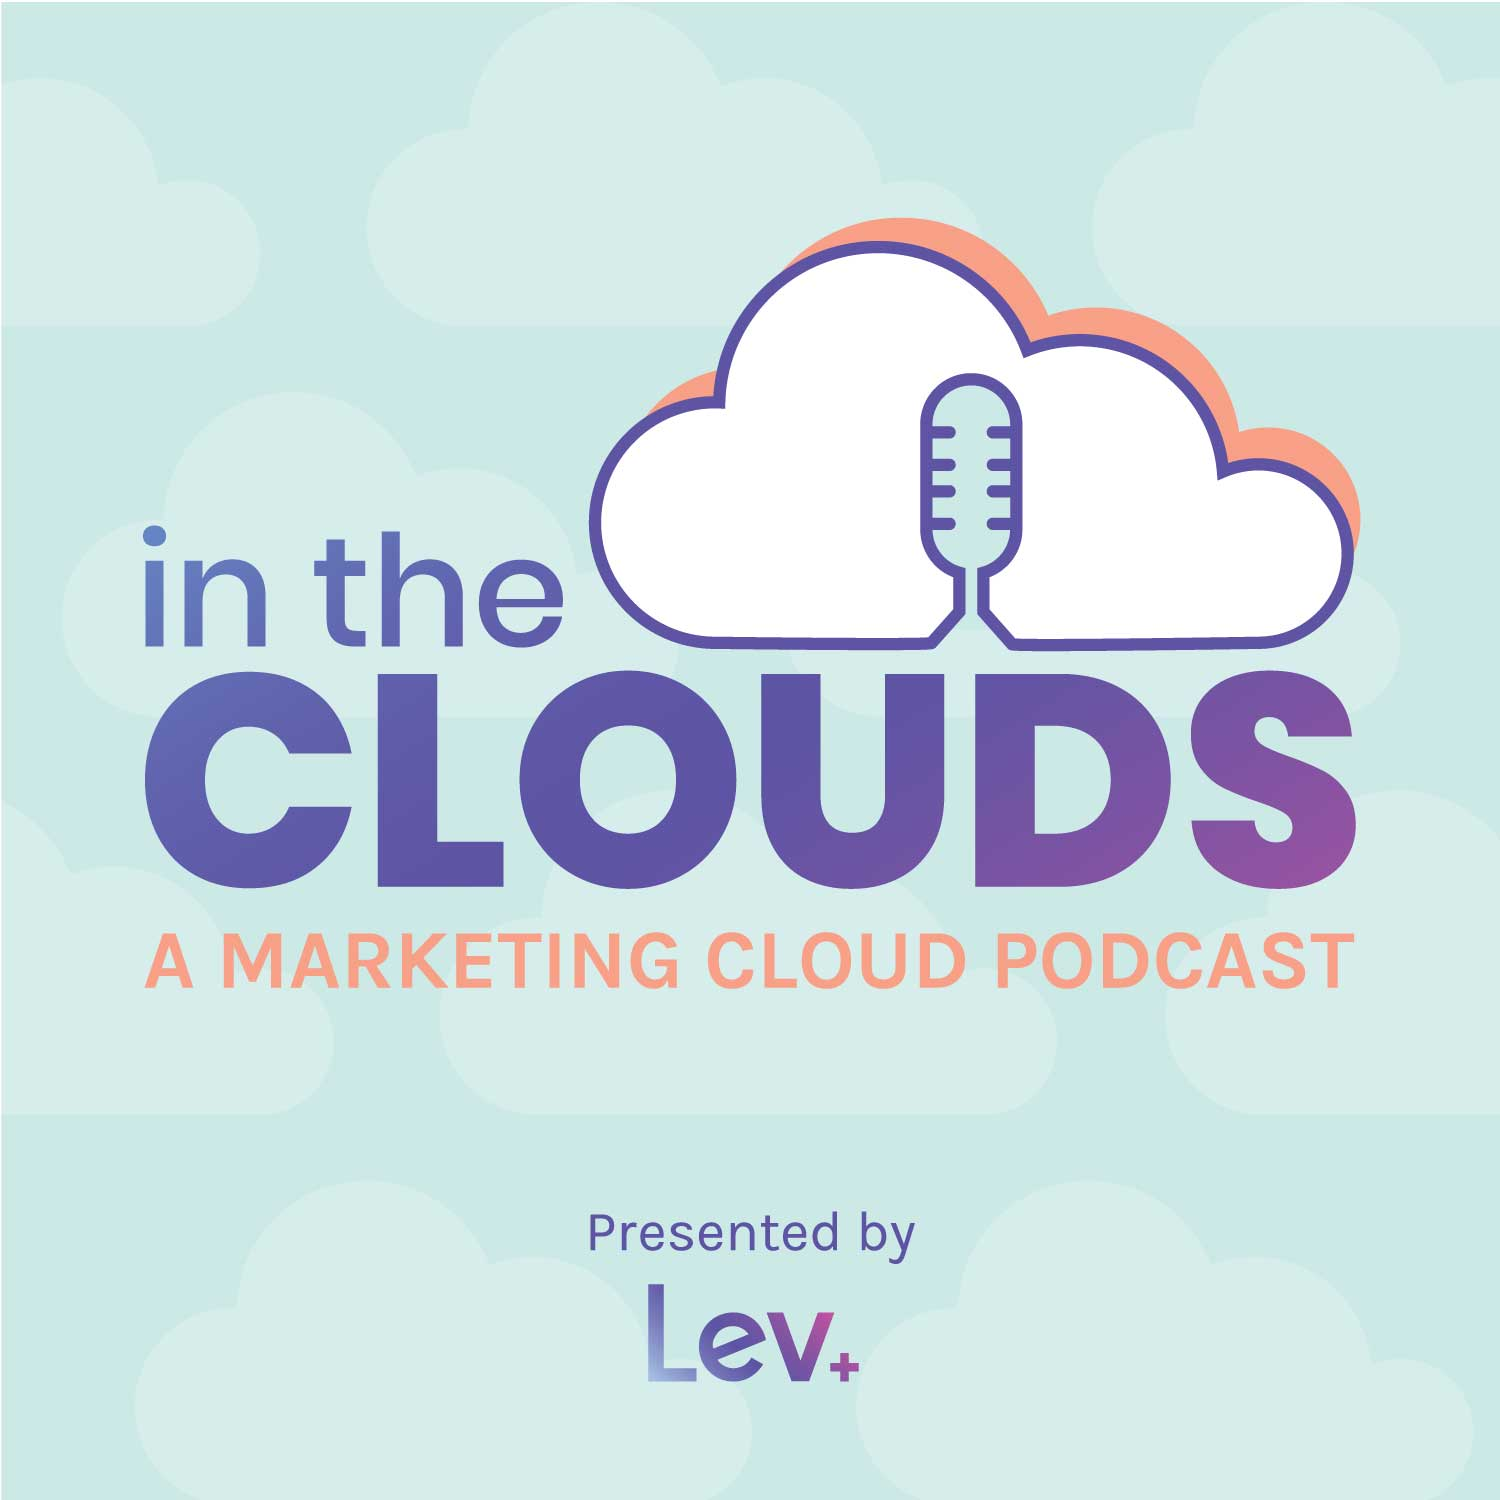 In the Clouds - A Marketing Cloud Podcast